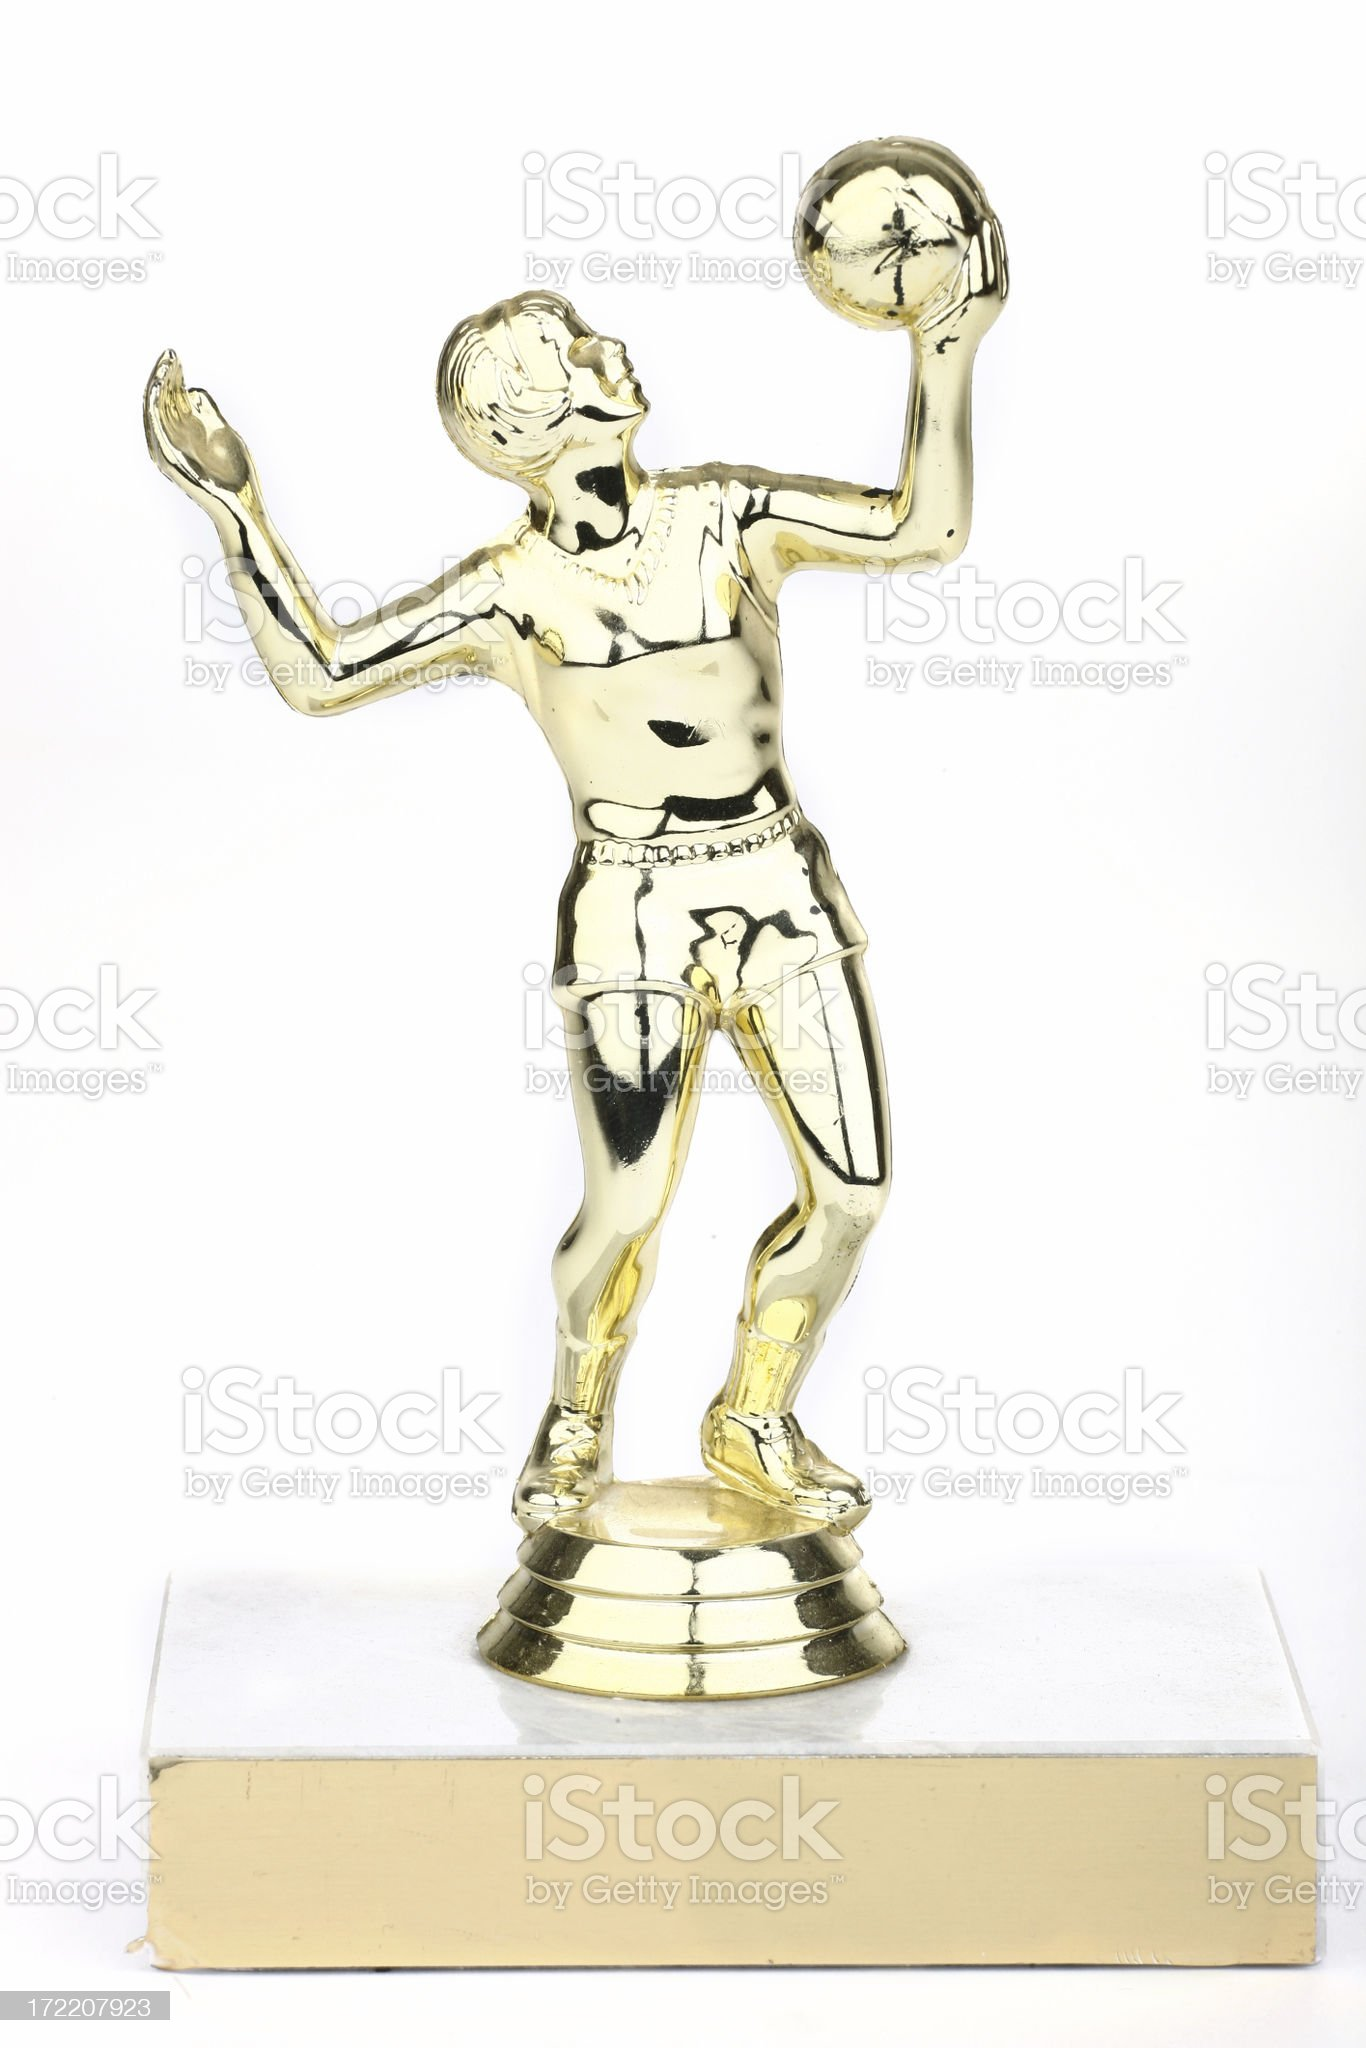 Volleyball Trophy royalty-free stock photo